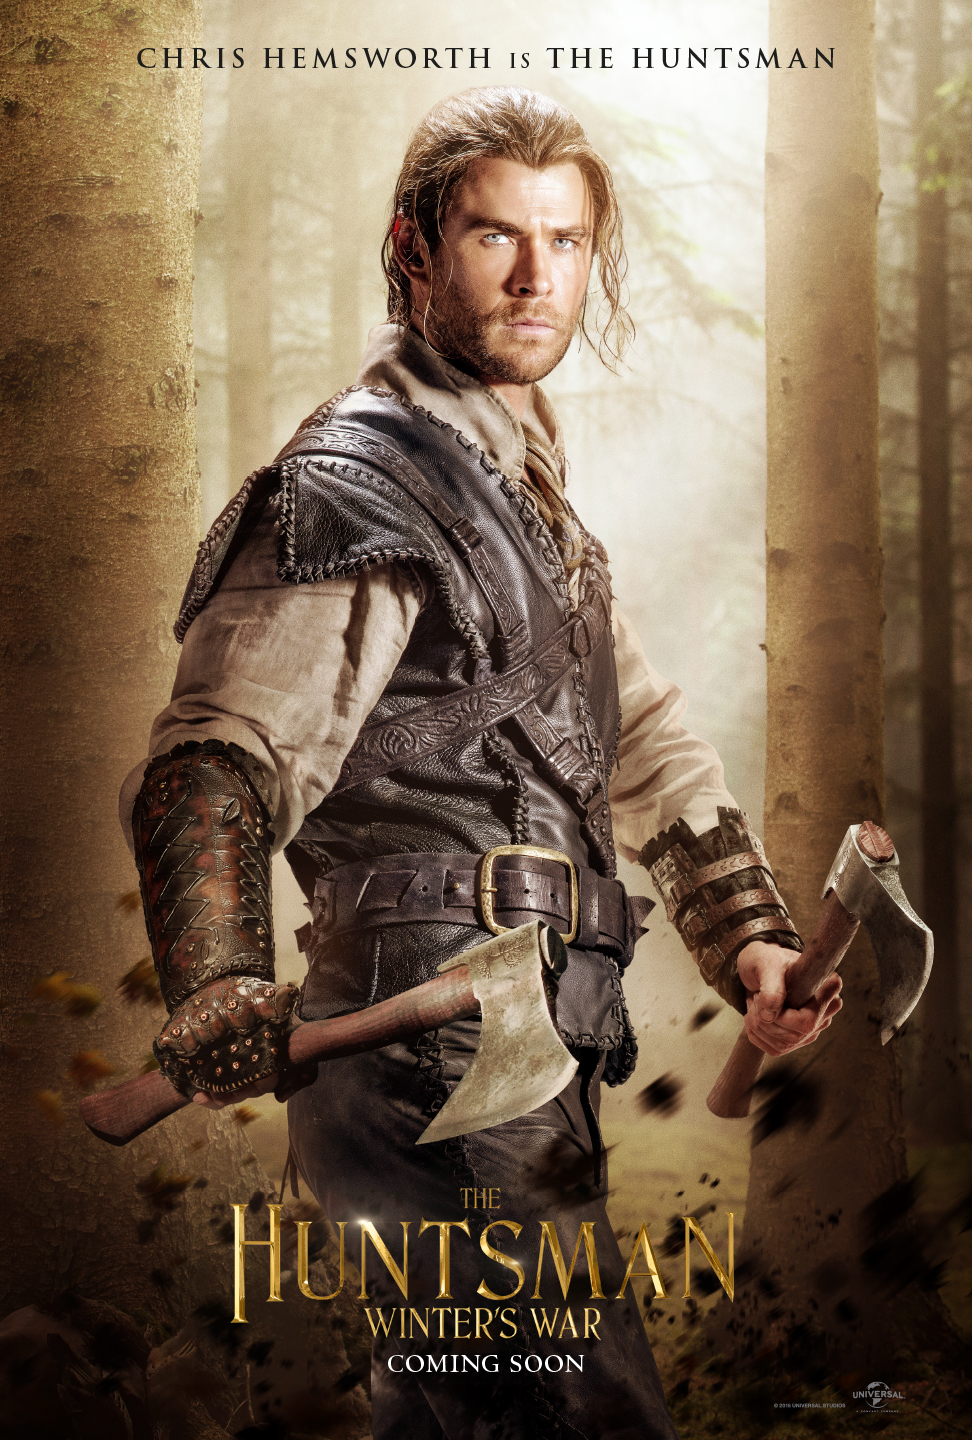 The_Huntsman_Intl_Ov_Character_1-Sht-Payoff_Chris